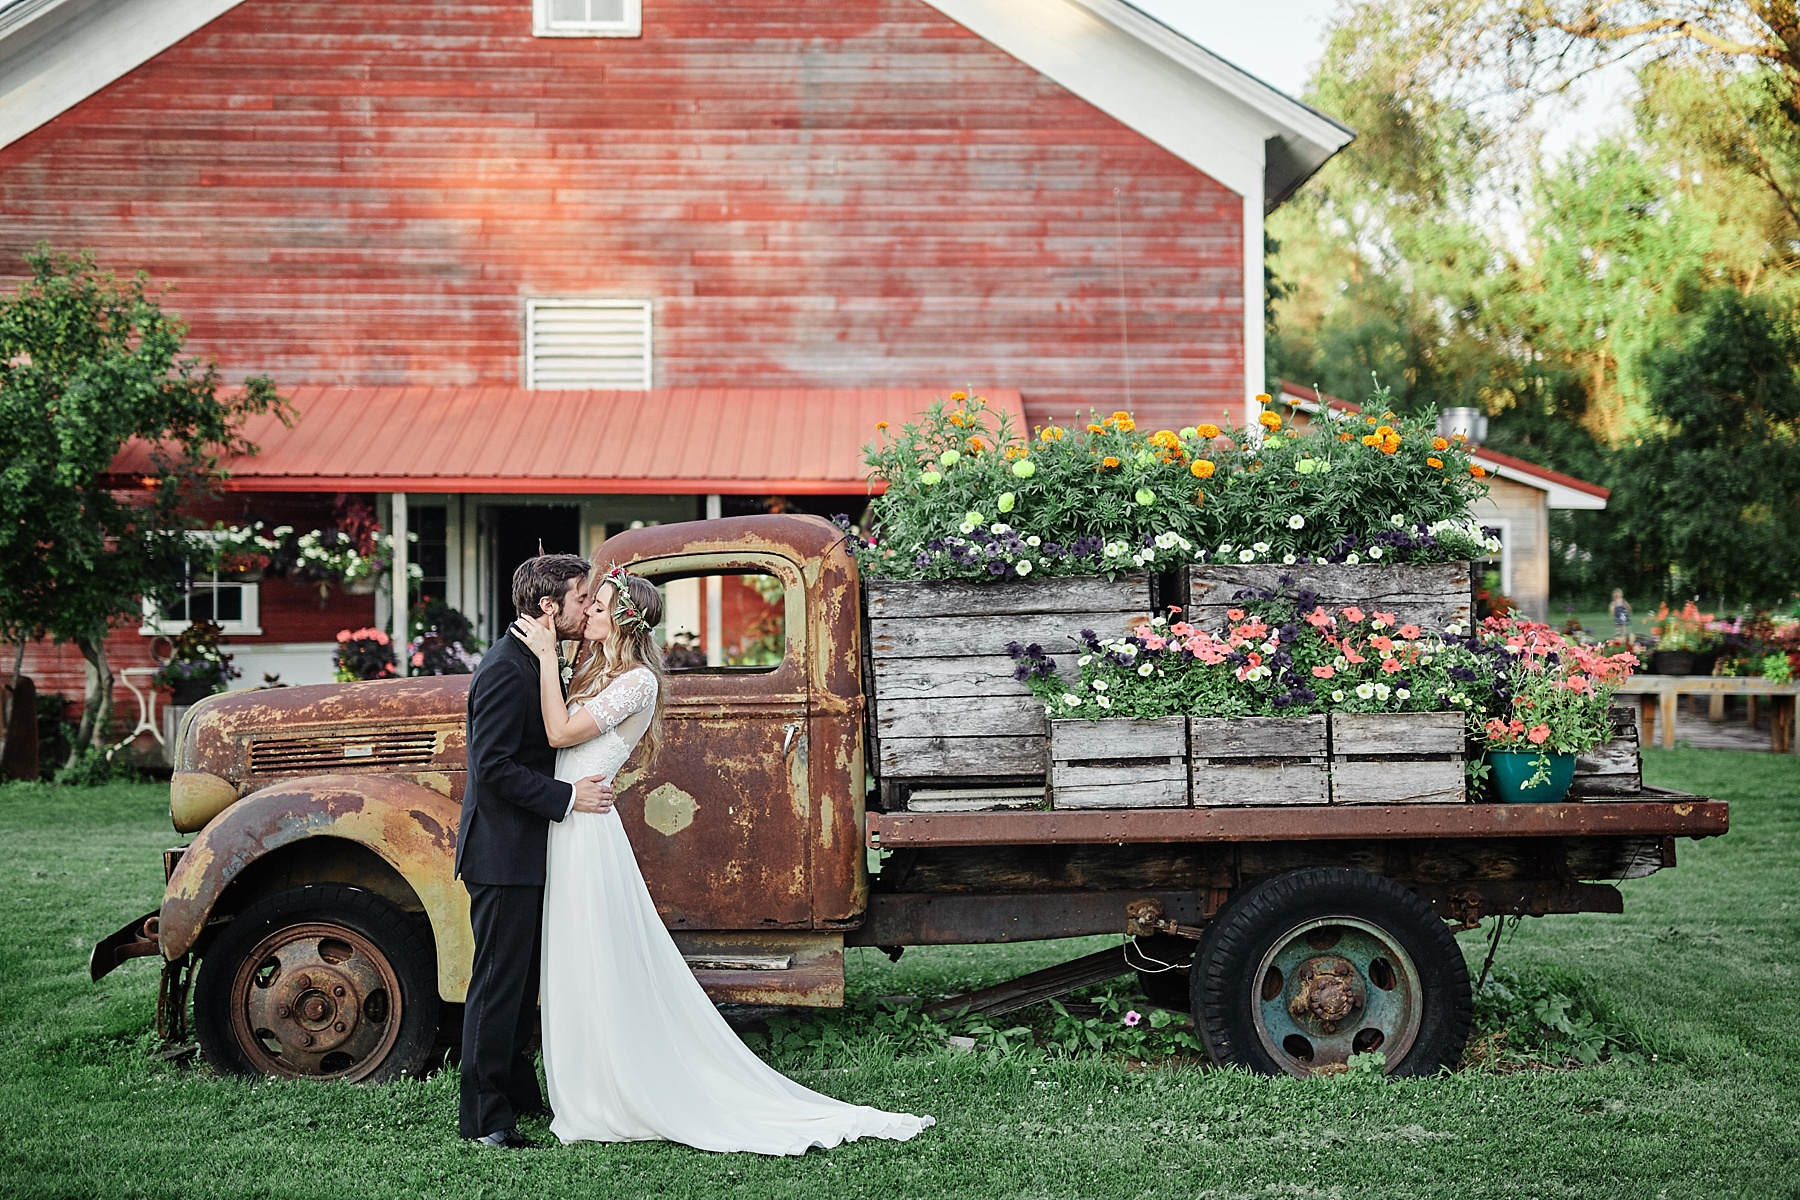 Fairhaven-Farm-South-Haven-Minnesota-Barn-Outdoor-Wedding-Josh-Kailey_1032.jpg